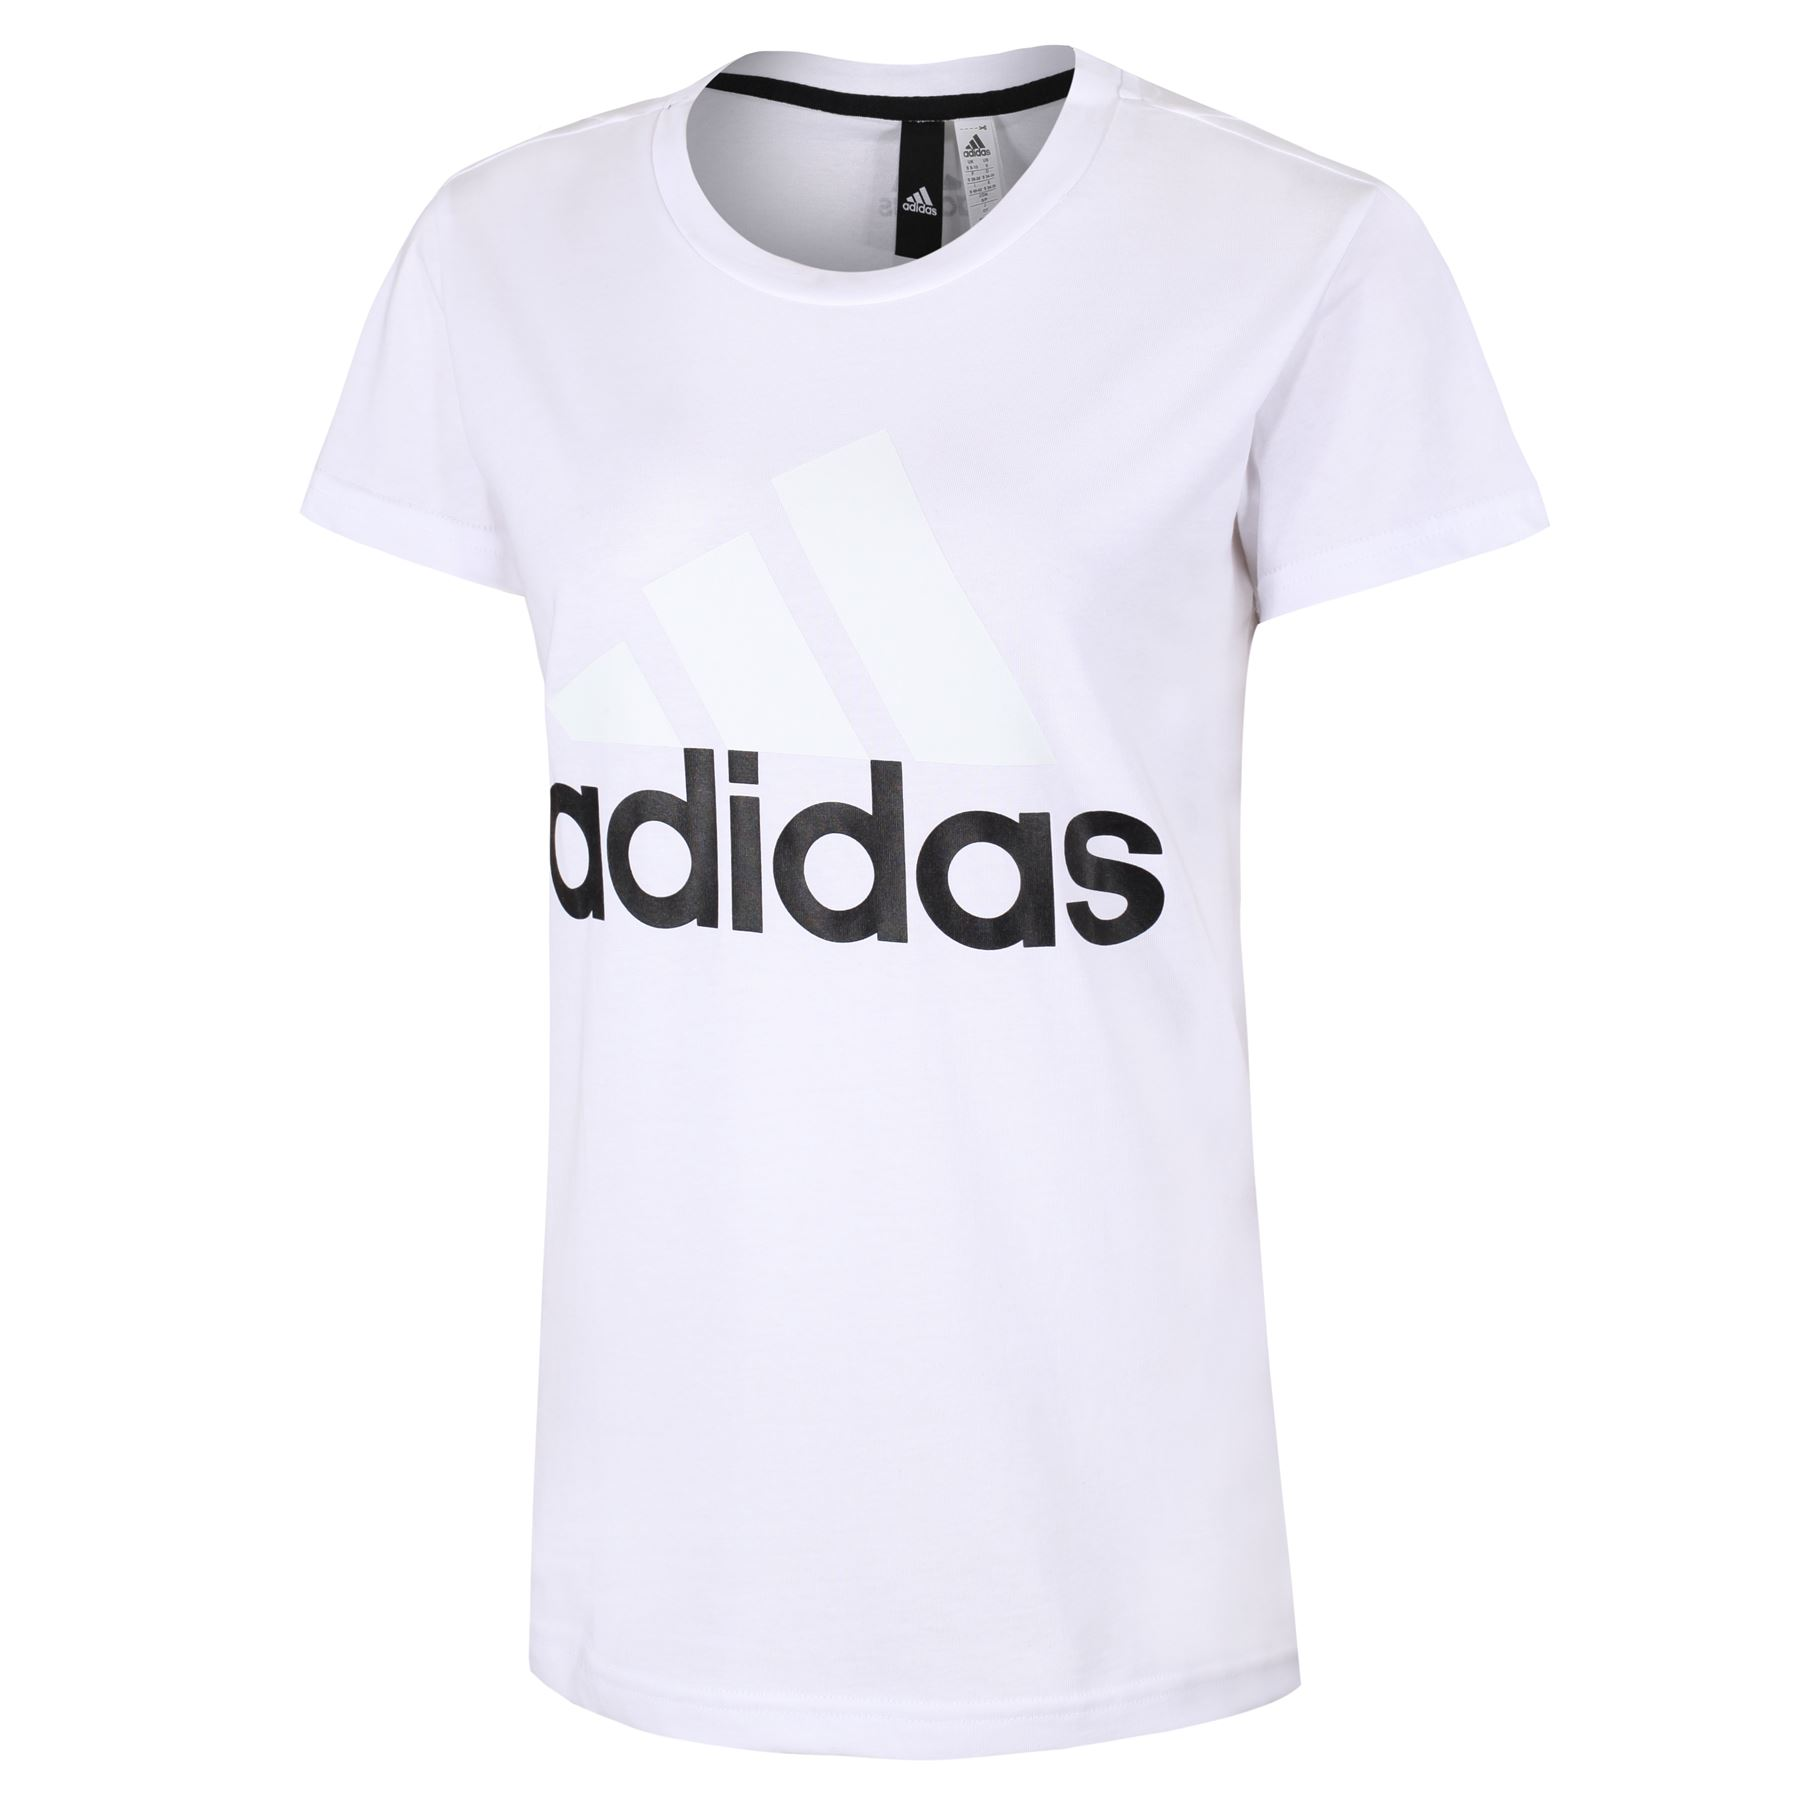 adidas-WOMEN-039-S-ESSENTIALS-LINEAR-T-SHIRT-GYM-BLACK-PINK-WHITE-NAVY-GIRLS-LADIES thumbnail 24